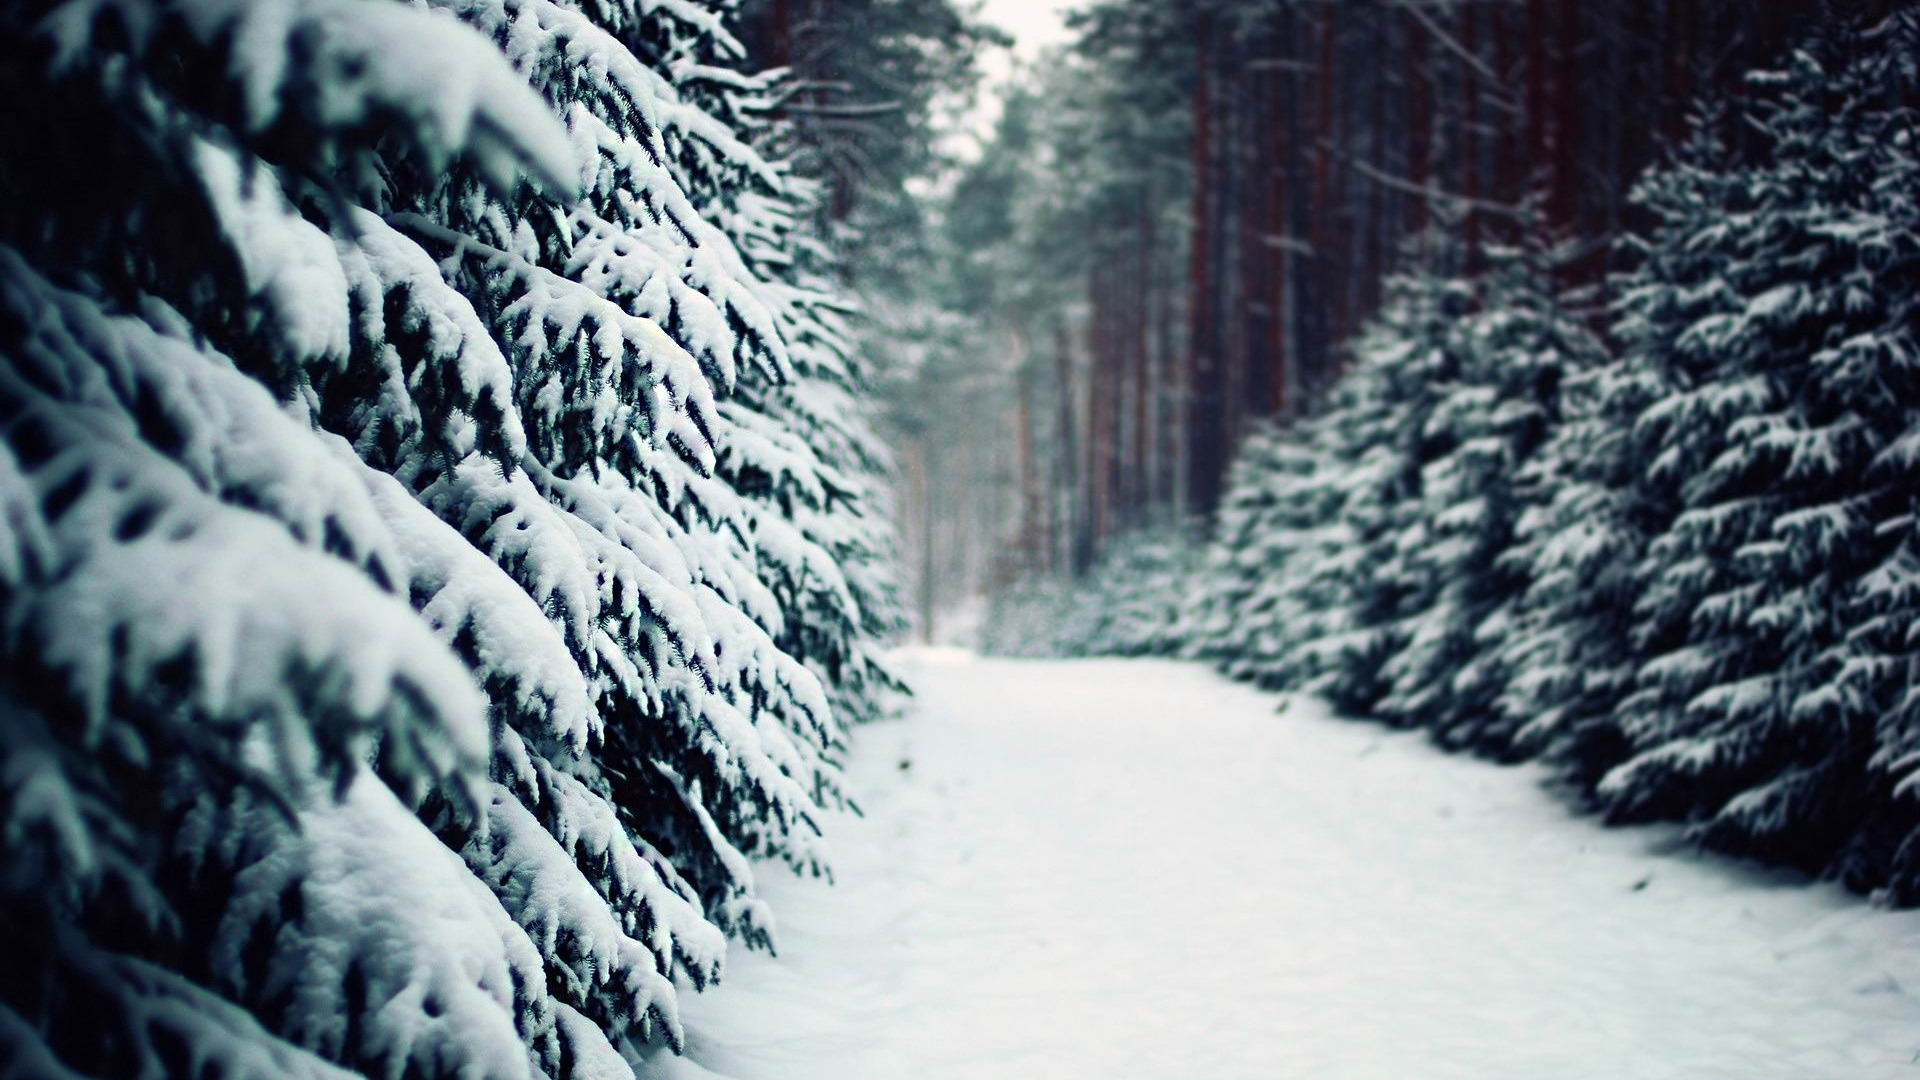 http://www.10wallpaper.com/down/Snow_road_in_the_forest-winter_scenery_HD_Wallpaper_1920x1080_wallpaper.html